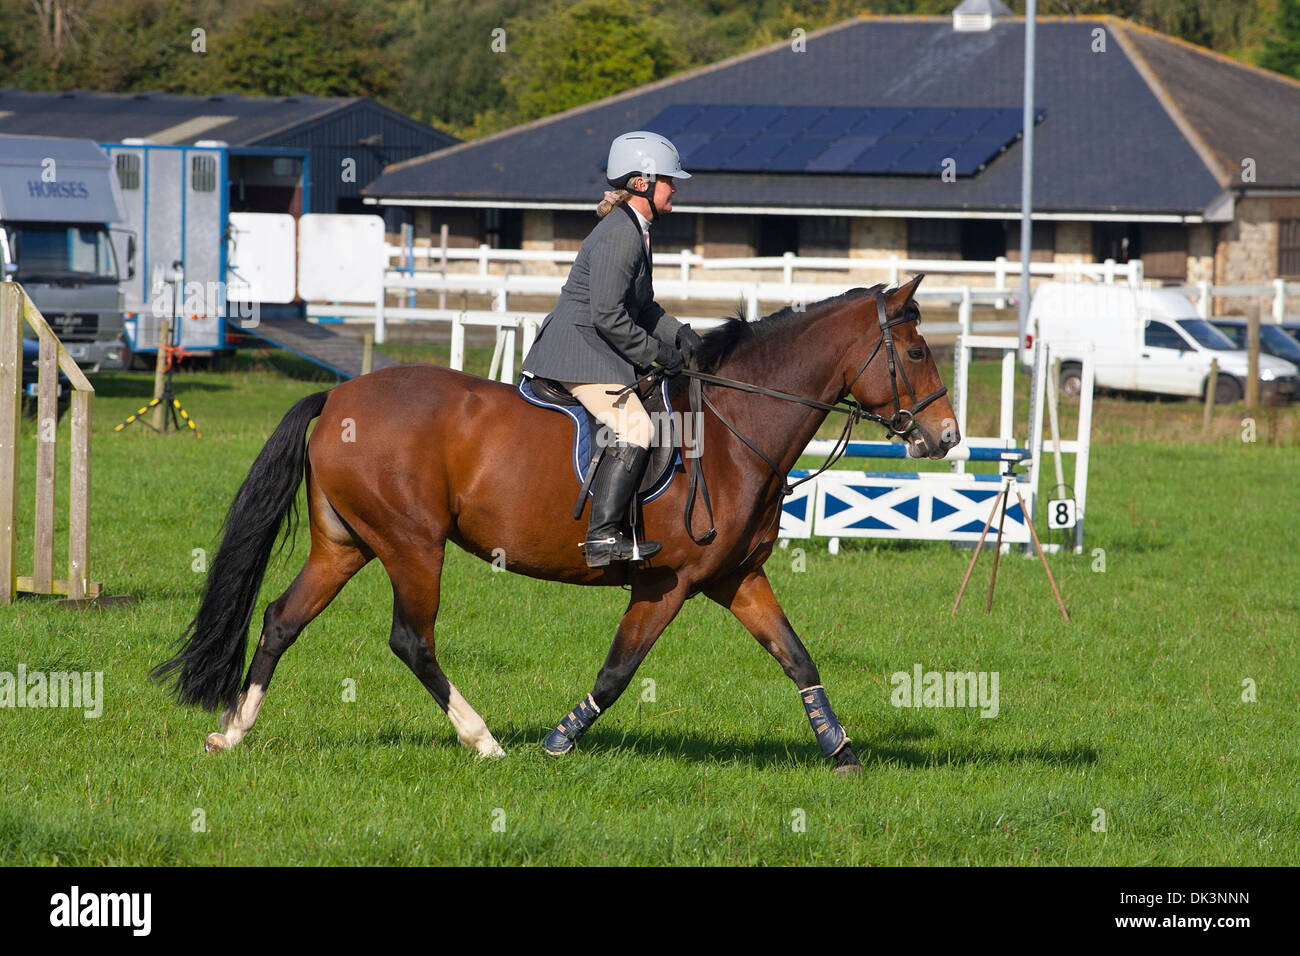 Horse Jumping eventing cross country equine sport jump show rural farm box gray gymkhana Godshill Isle of Wight England UK - Stock Image